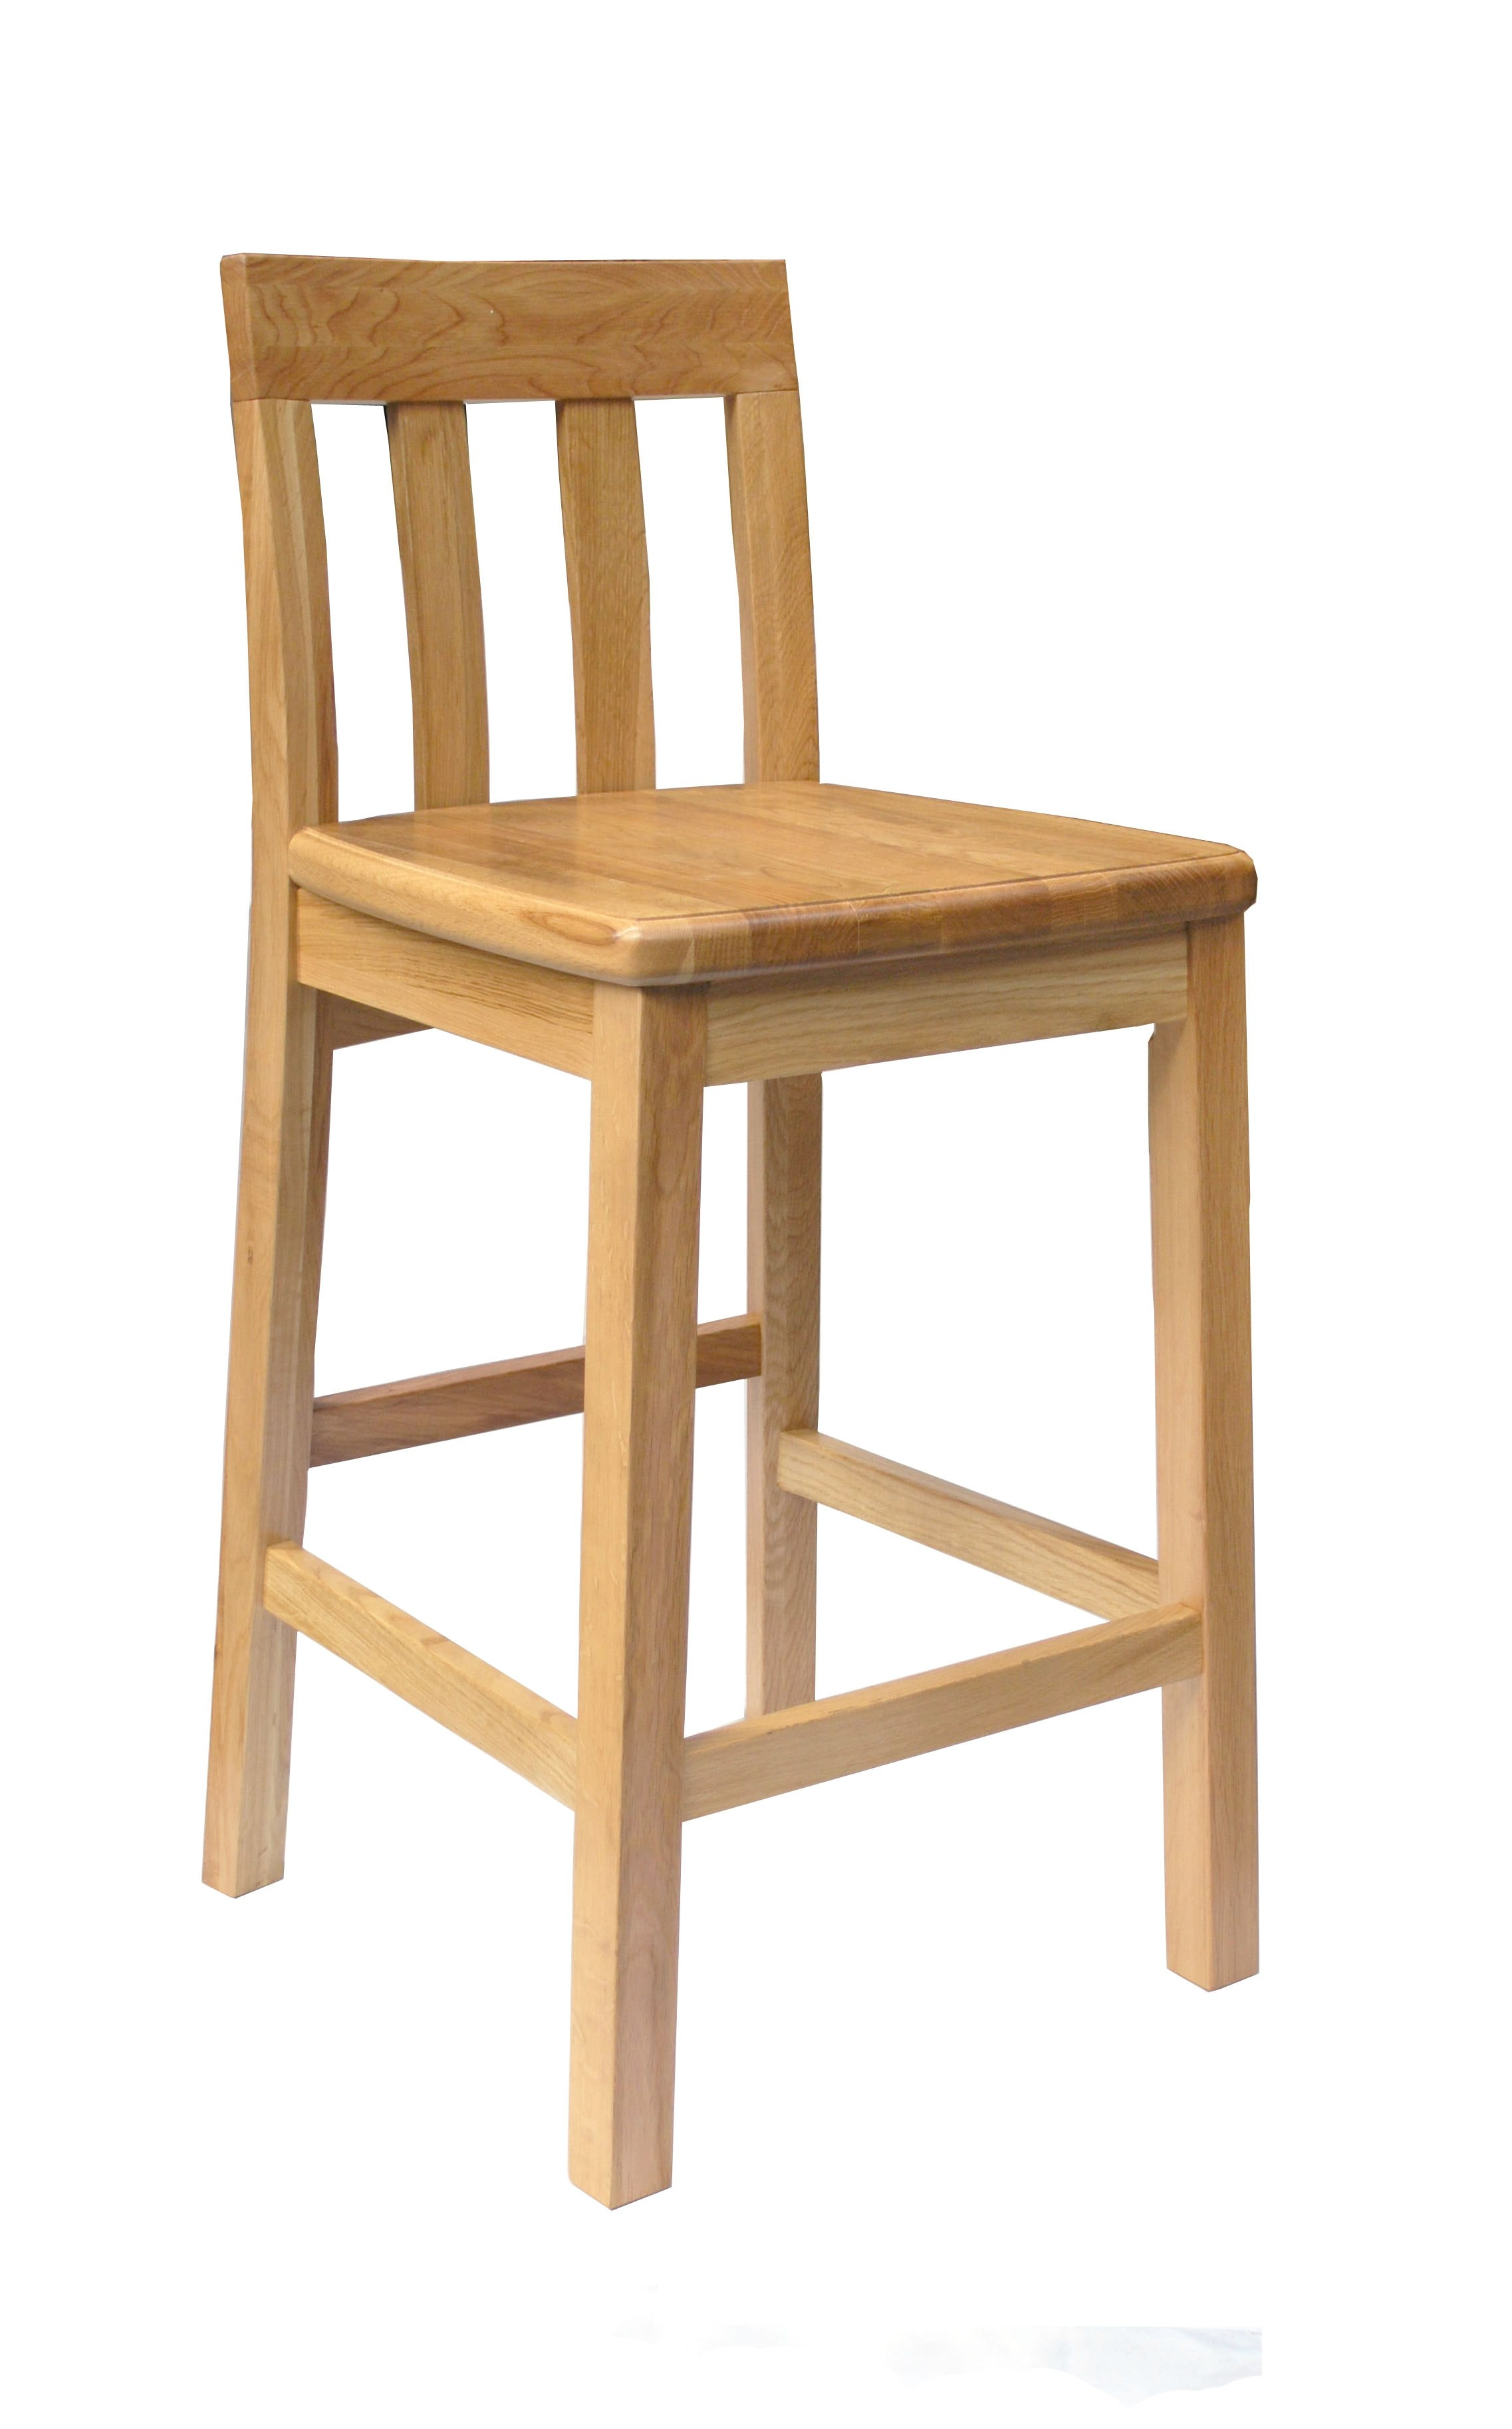 Furniture: wooden bar stool with brown wooden floor and XZPPBBY